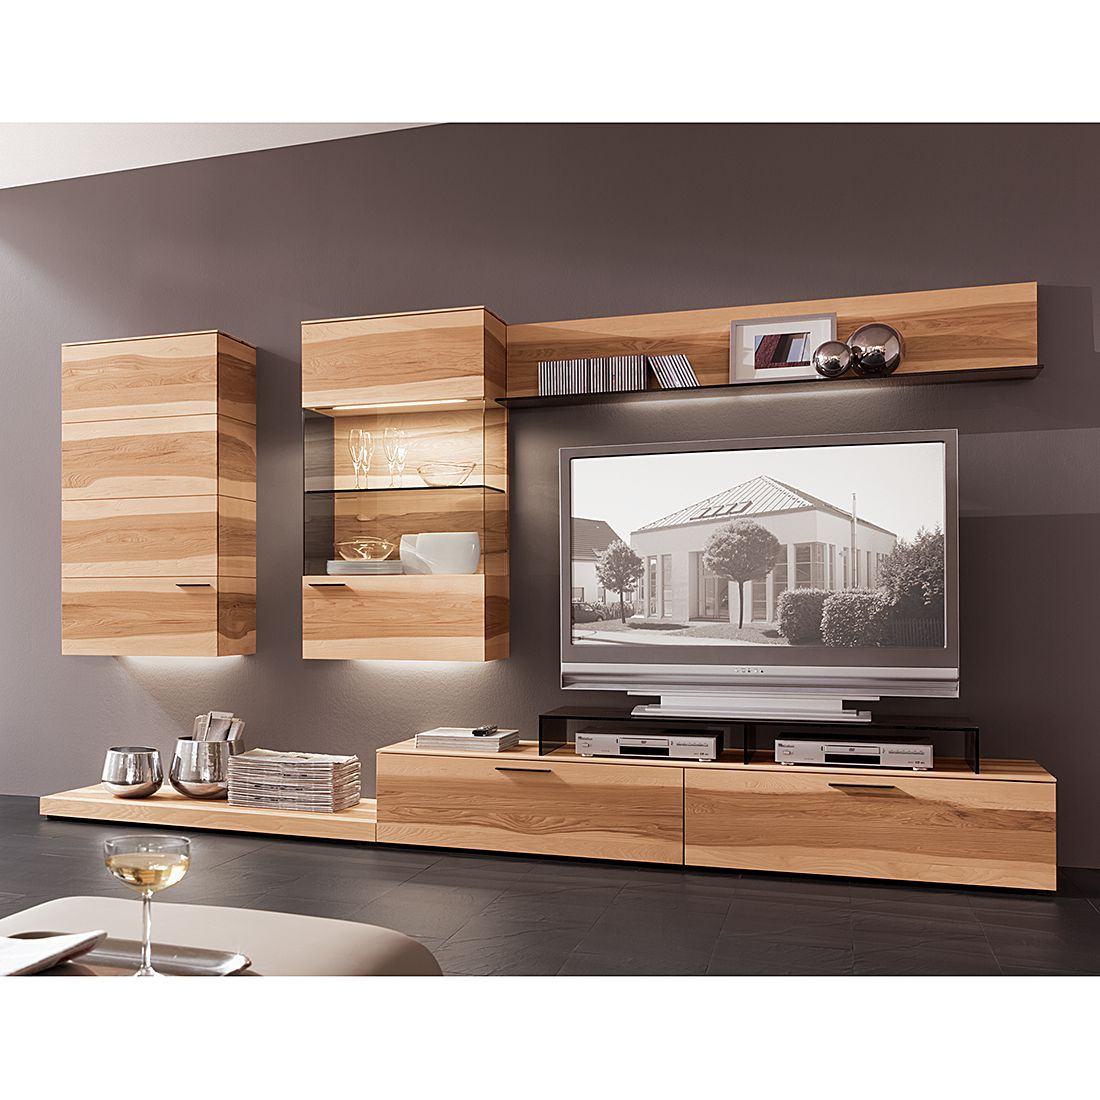 wohnwand ohne tv free good awesome full size of wohnzimmer wohnwand ohne tv schnes wohnzimmer. Black Bedroom Furniture Sets. Home Design Ideas